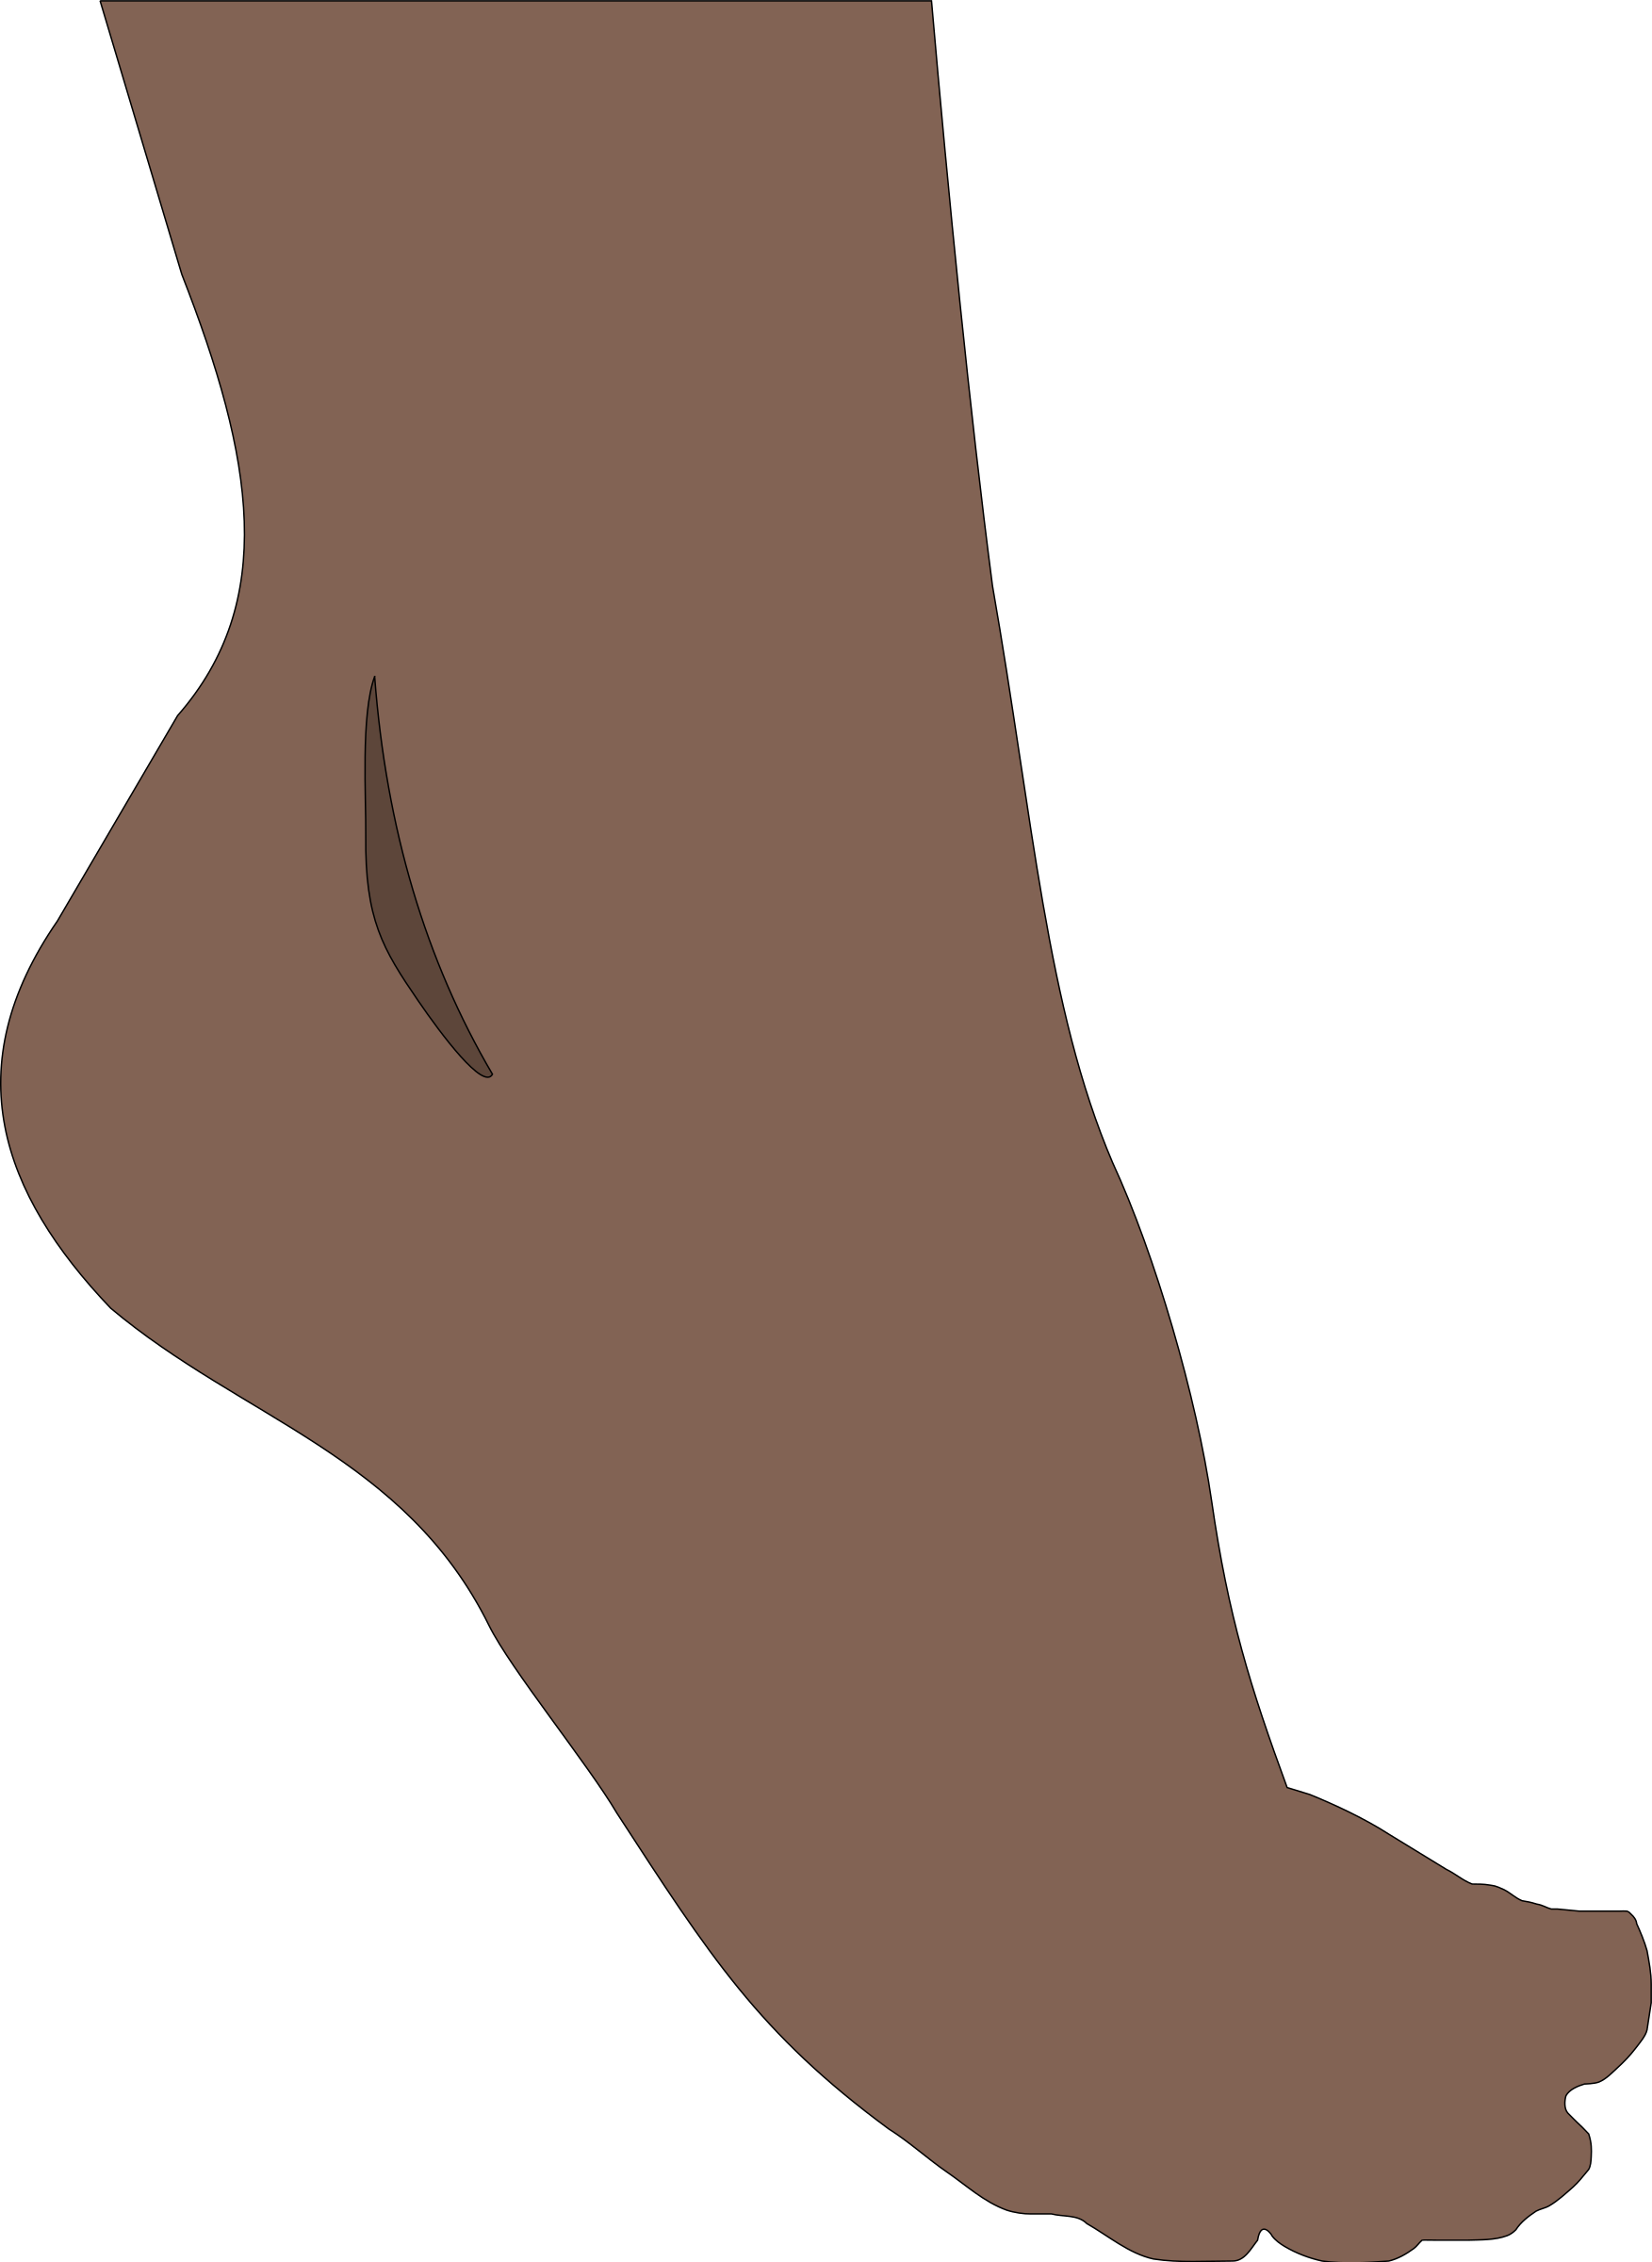 Feet clipart person. Foot big image png